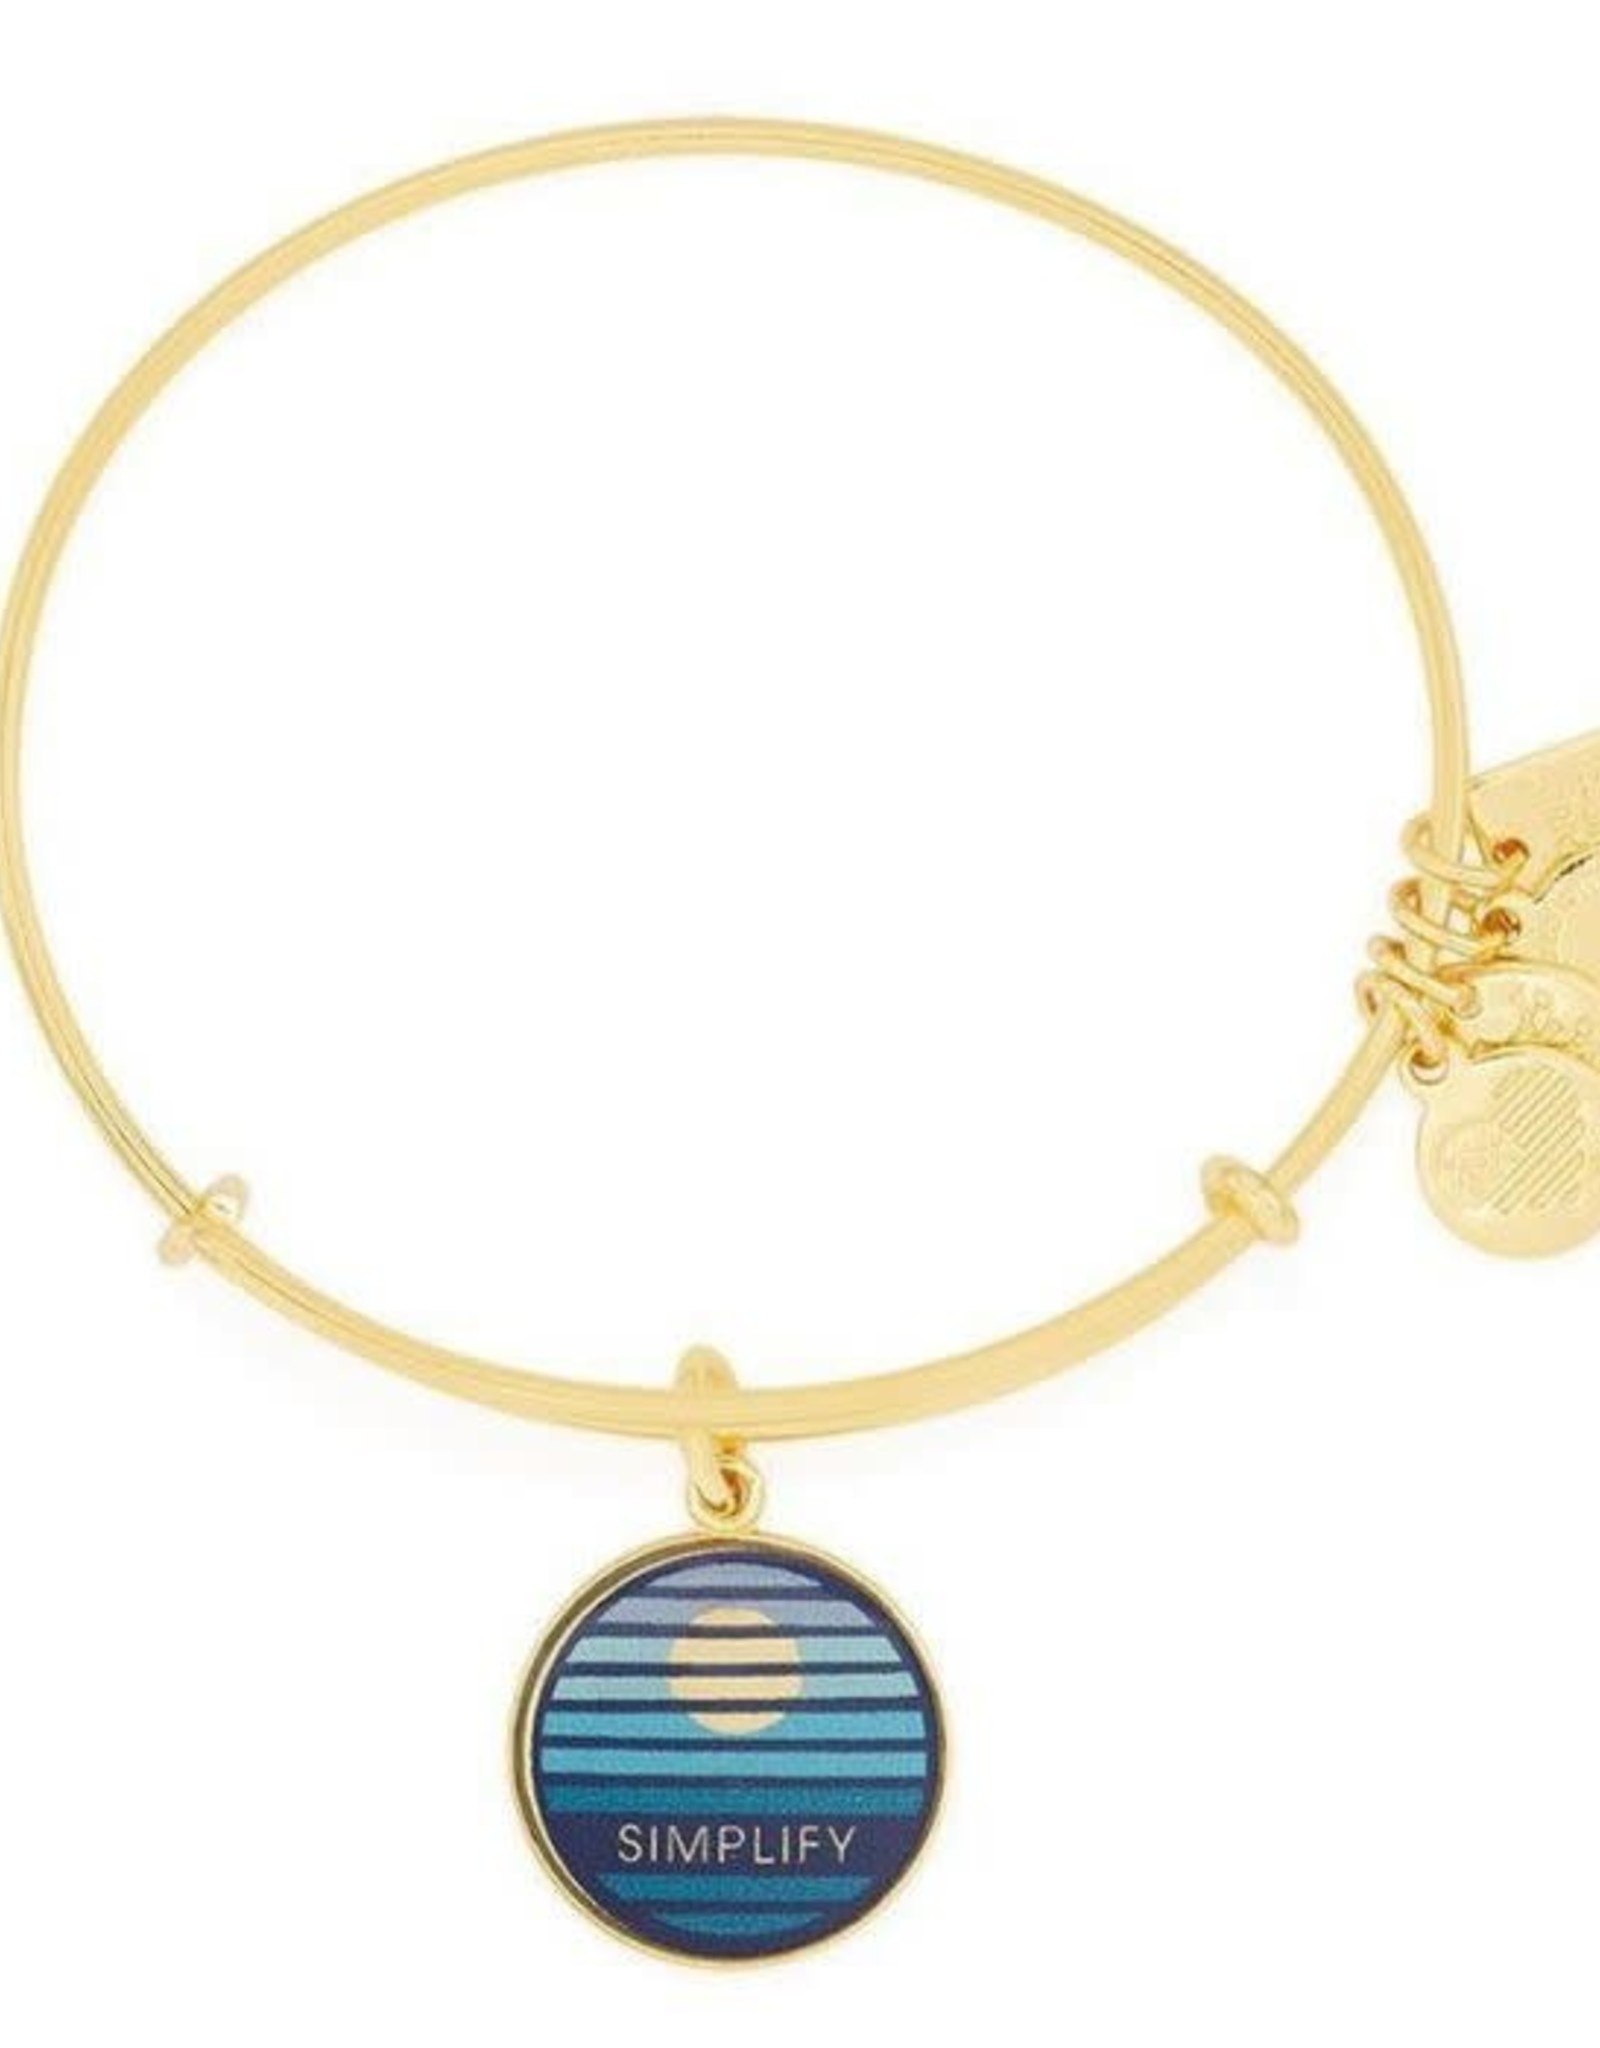 Alex and Ani Alex and Ani, Charity By Design, Simplify FINAL SALE